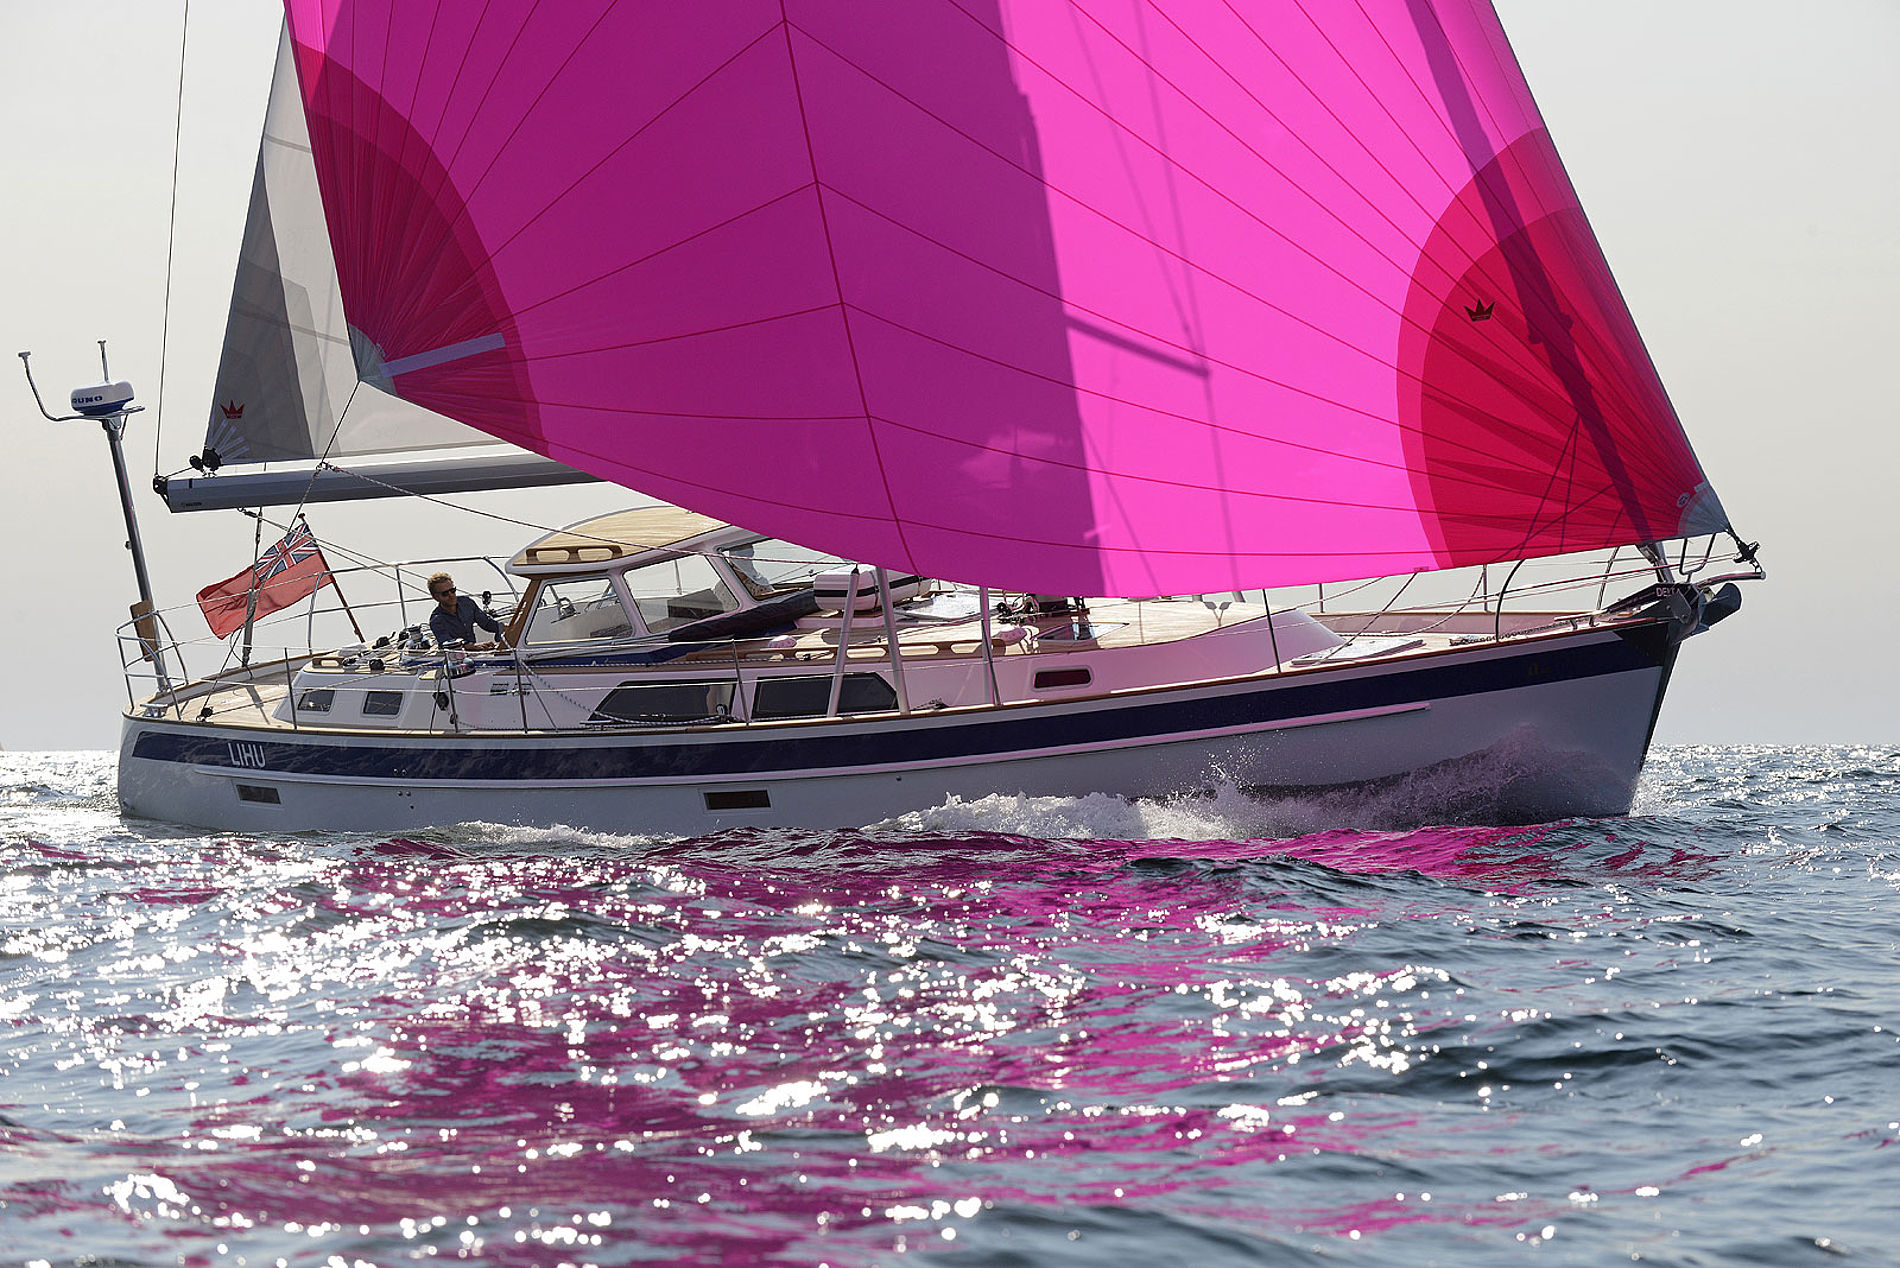 Final call for the Hallberg-Rassy 48 Mk II